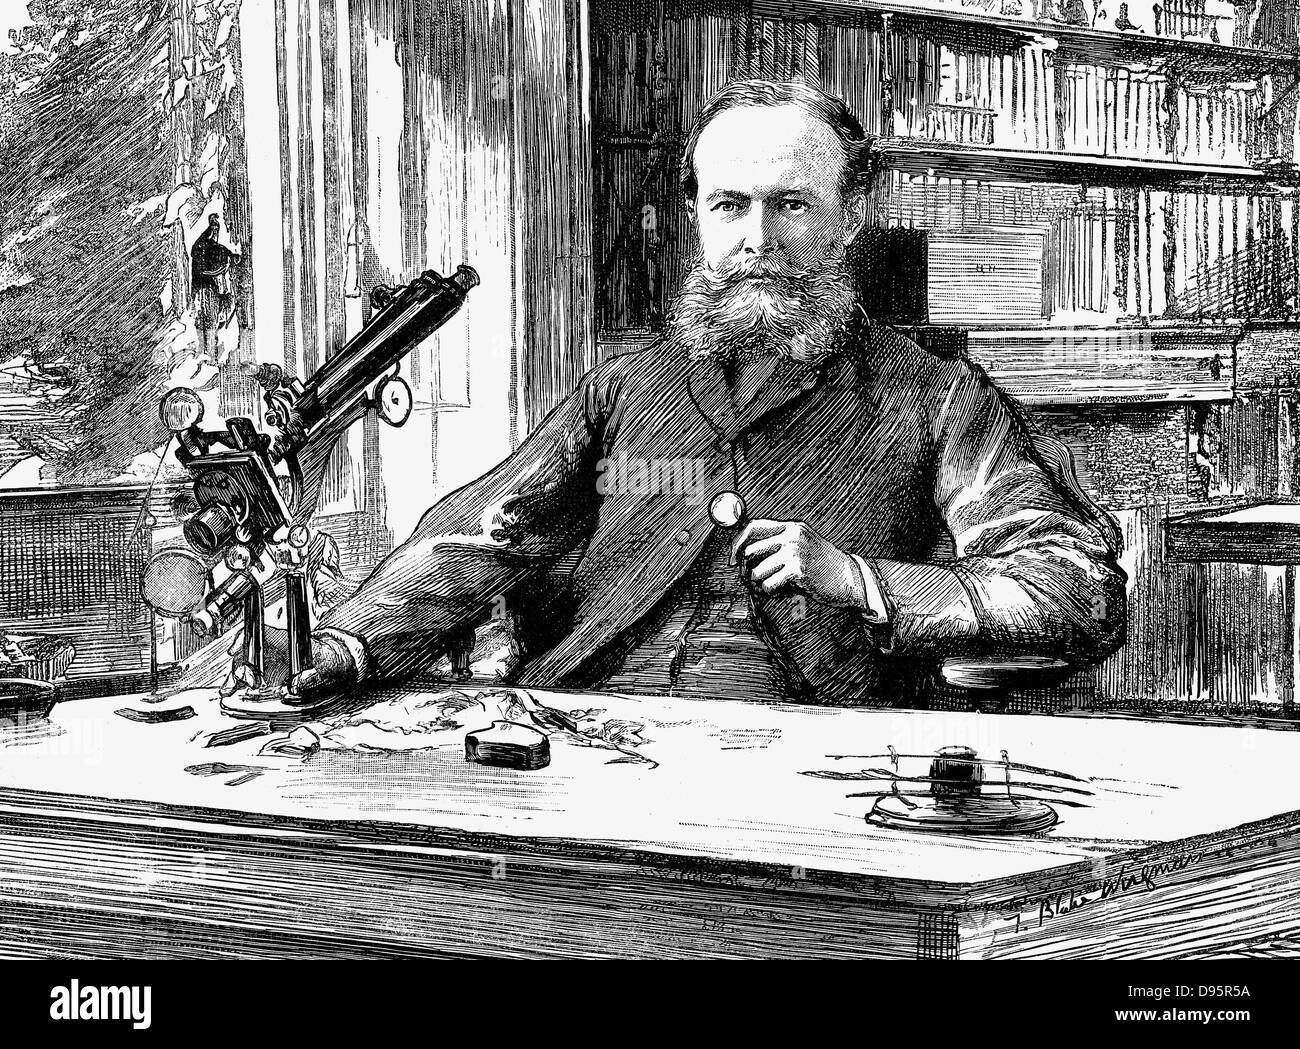 John Lubbock, lst  Baron Avebury (1834-1913) English banker, scientist and Liberal politician. Lubbock by window - Stock Image